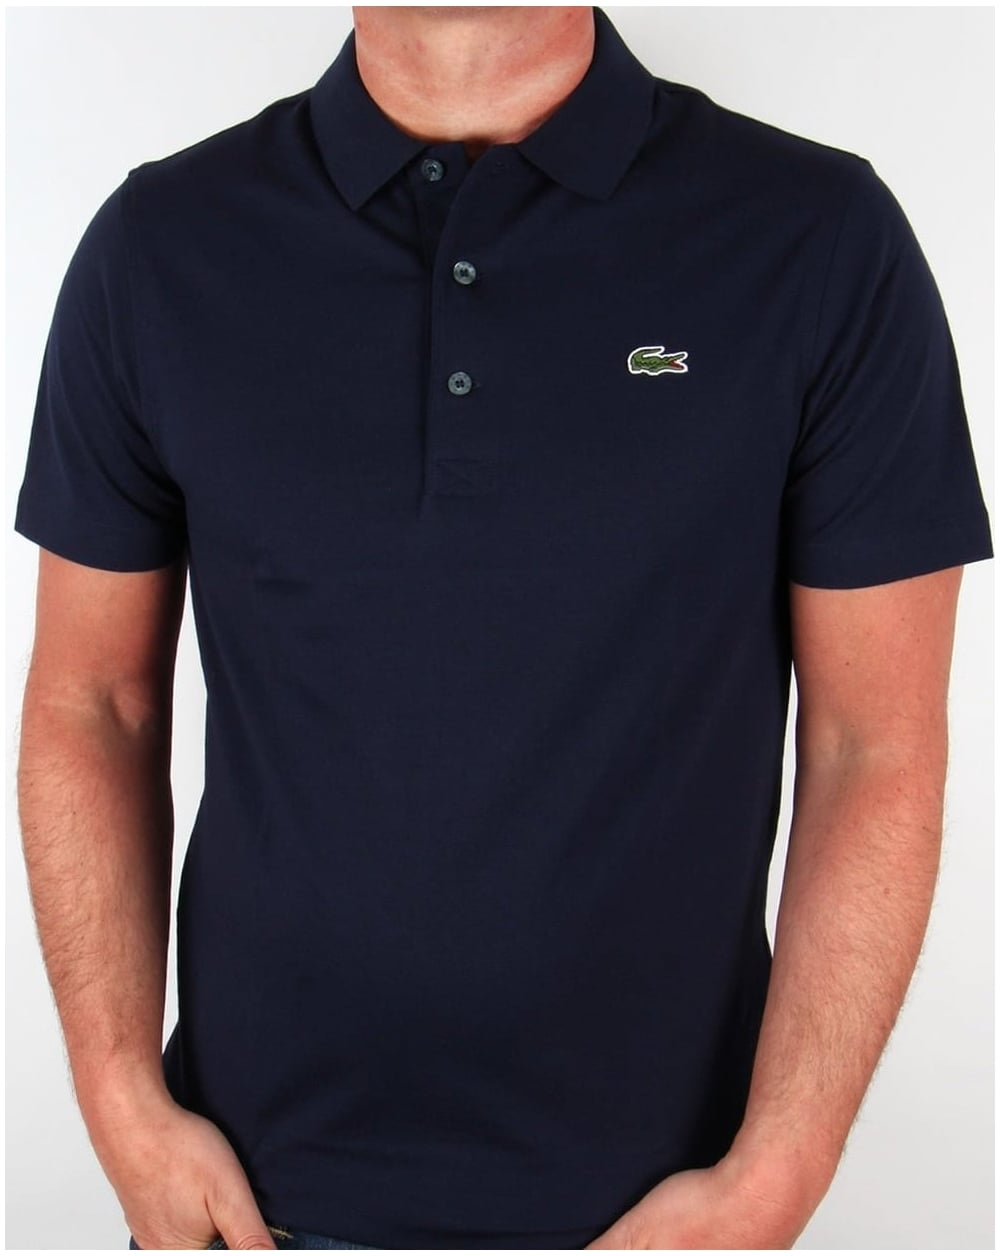 Lacoste polo shirt – Classic leisure fashion for high demands